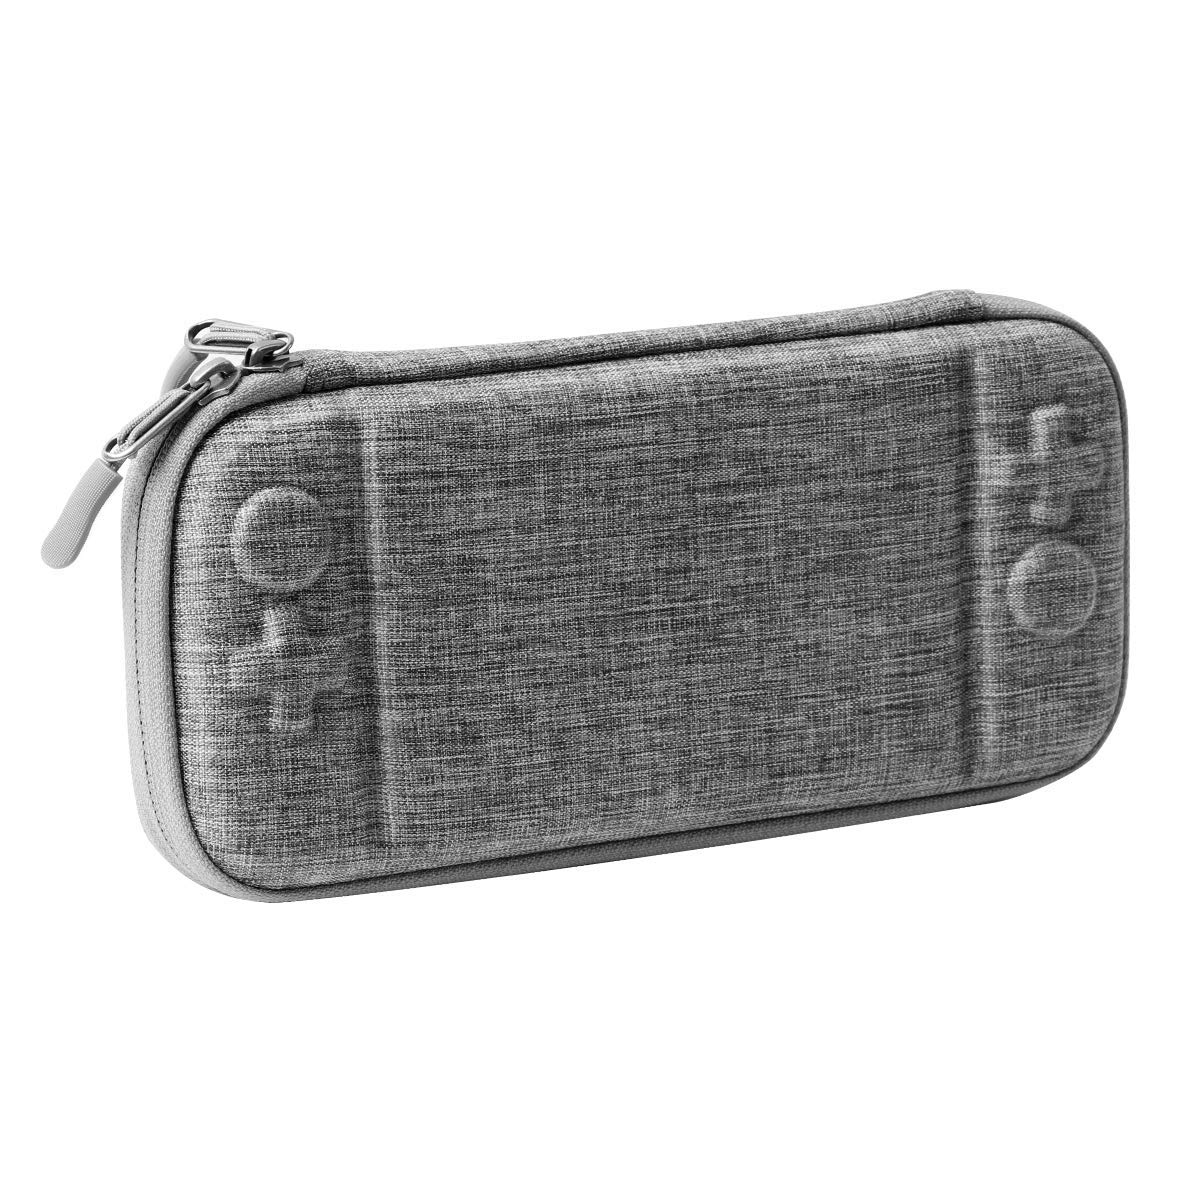 Rayvol Slim Carrying Case for Nintendo Switch, Ultra Slim Hard Shell with 10 Game Cartridges, Protective Carrying Case for Travel, Portable Pouch with Military Level Protection, Gray